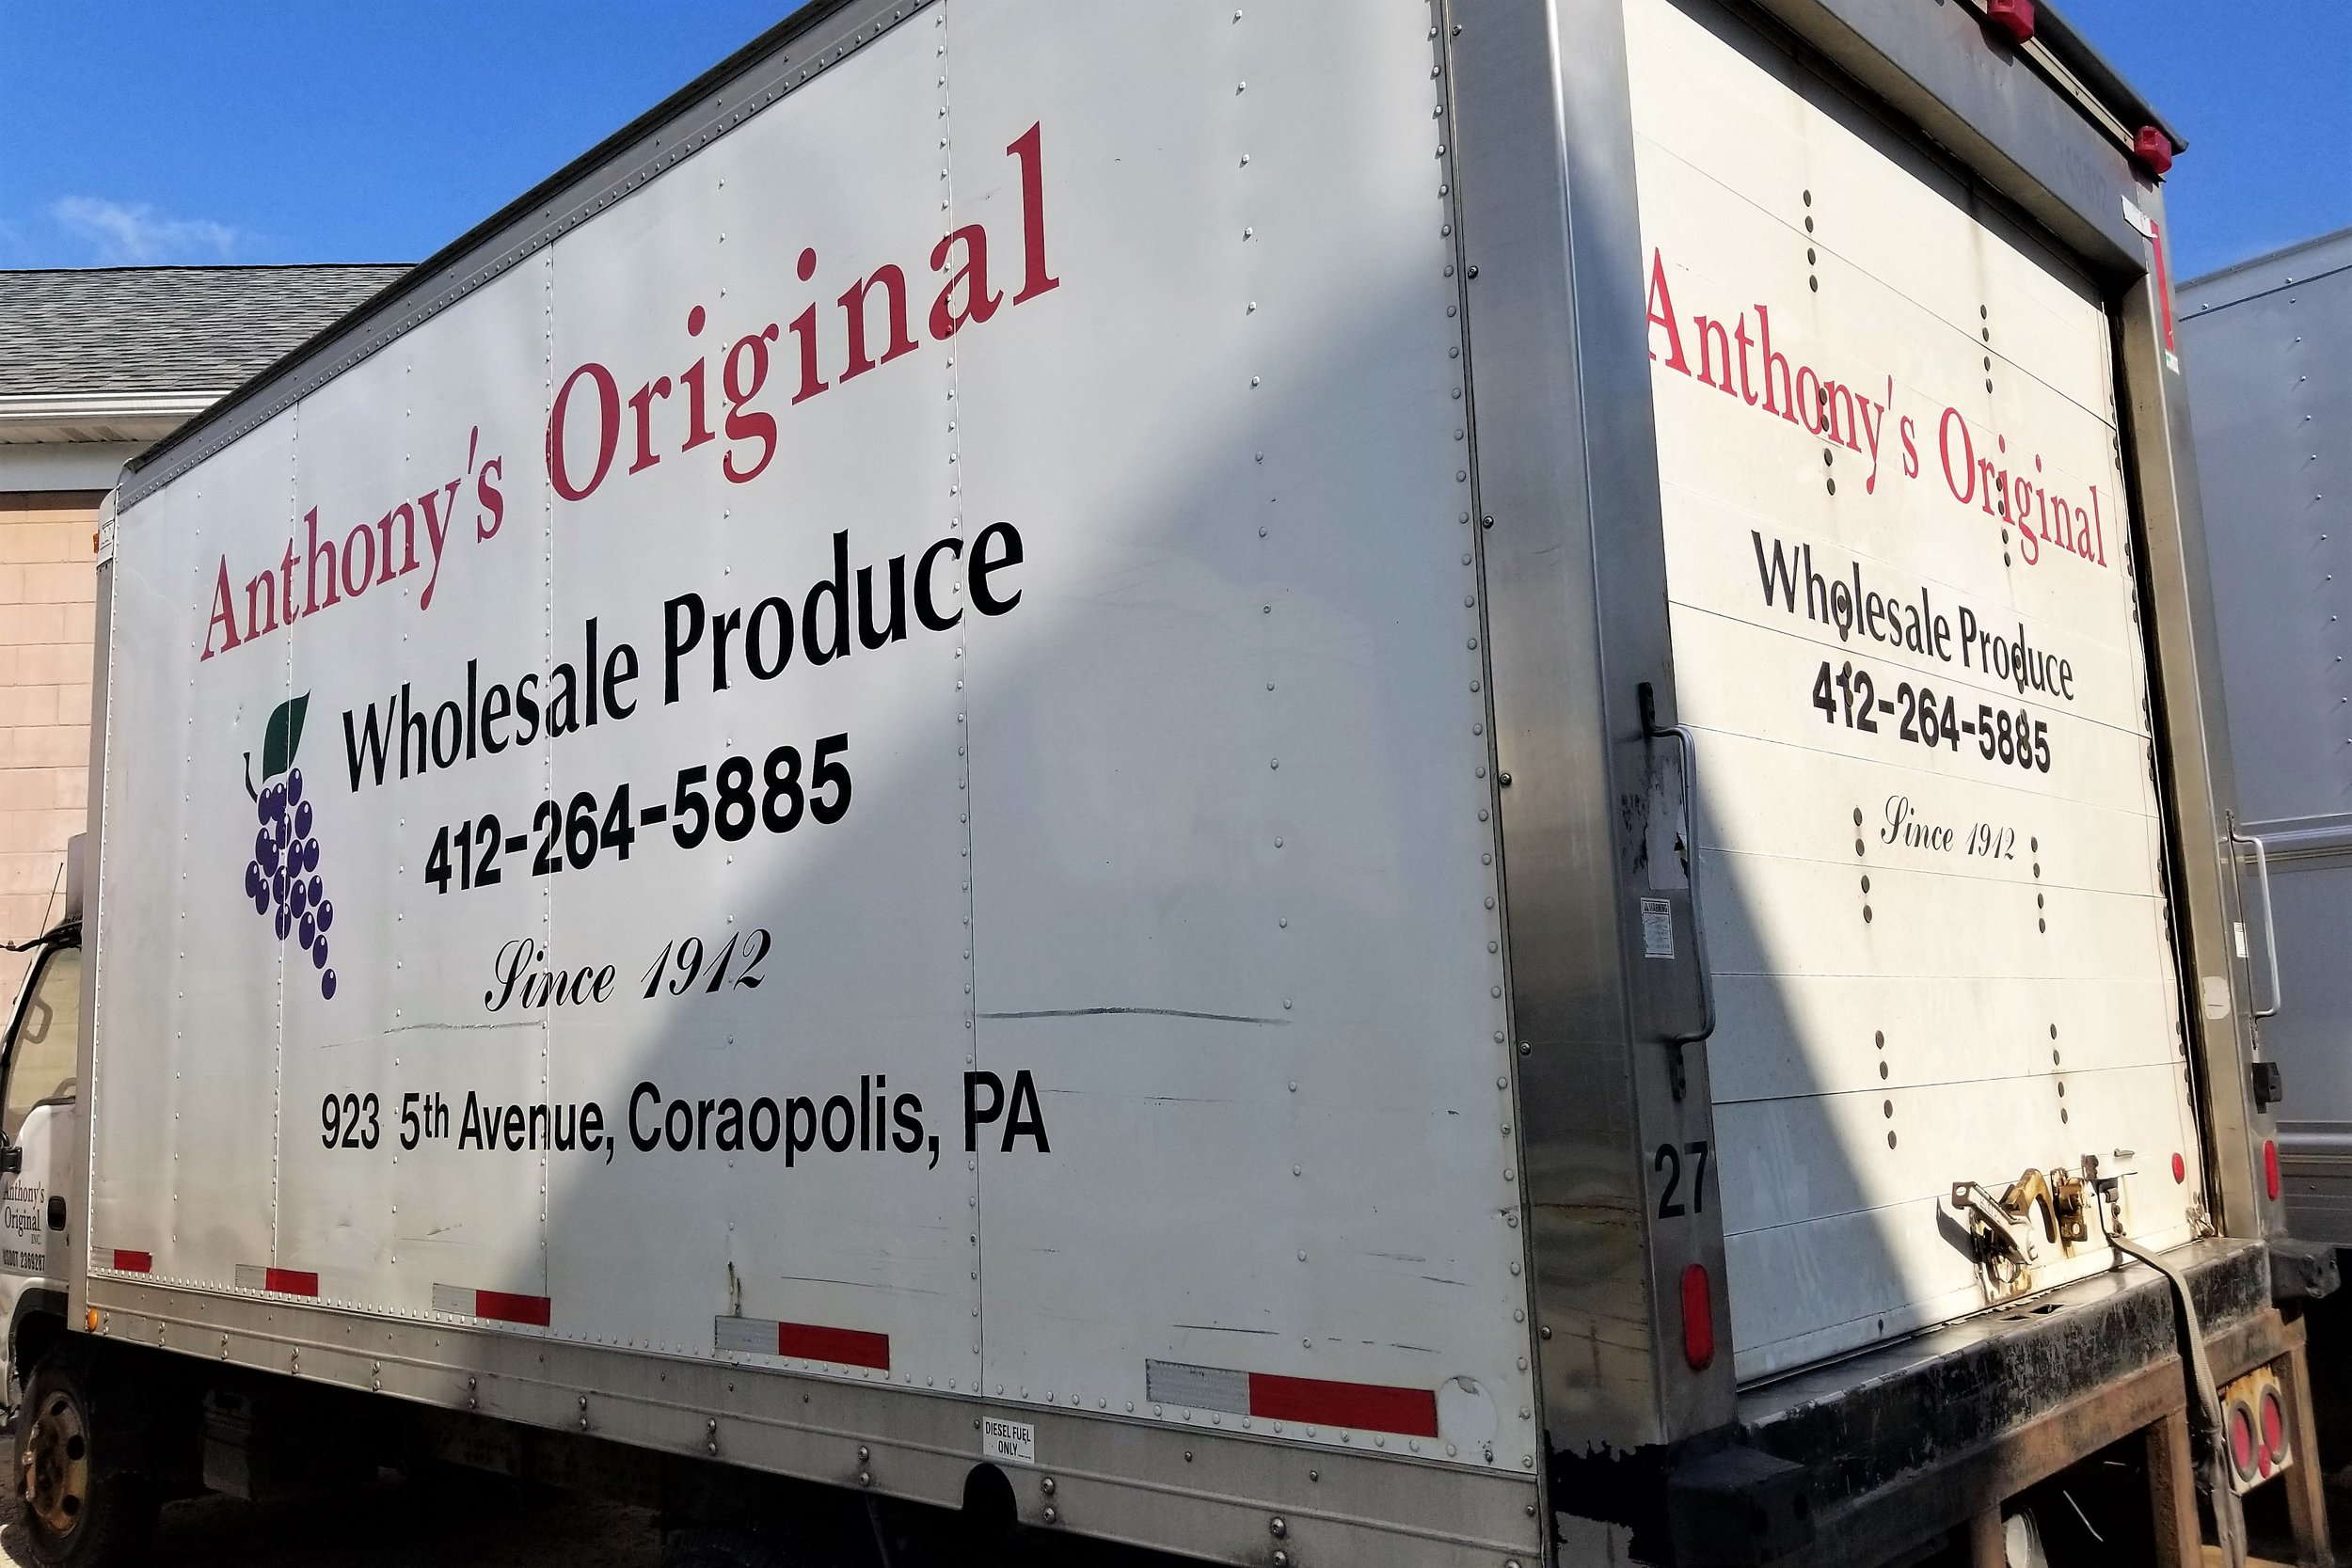 Anthony's Original Wholesale Produce - 923 5th Ave, (412) 264-5885